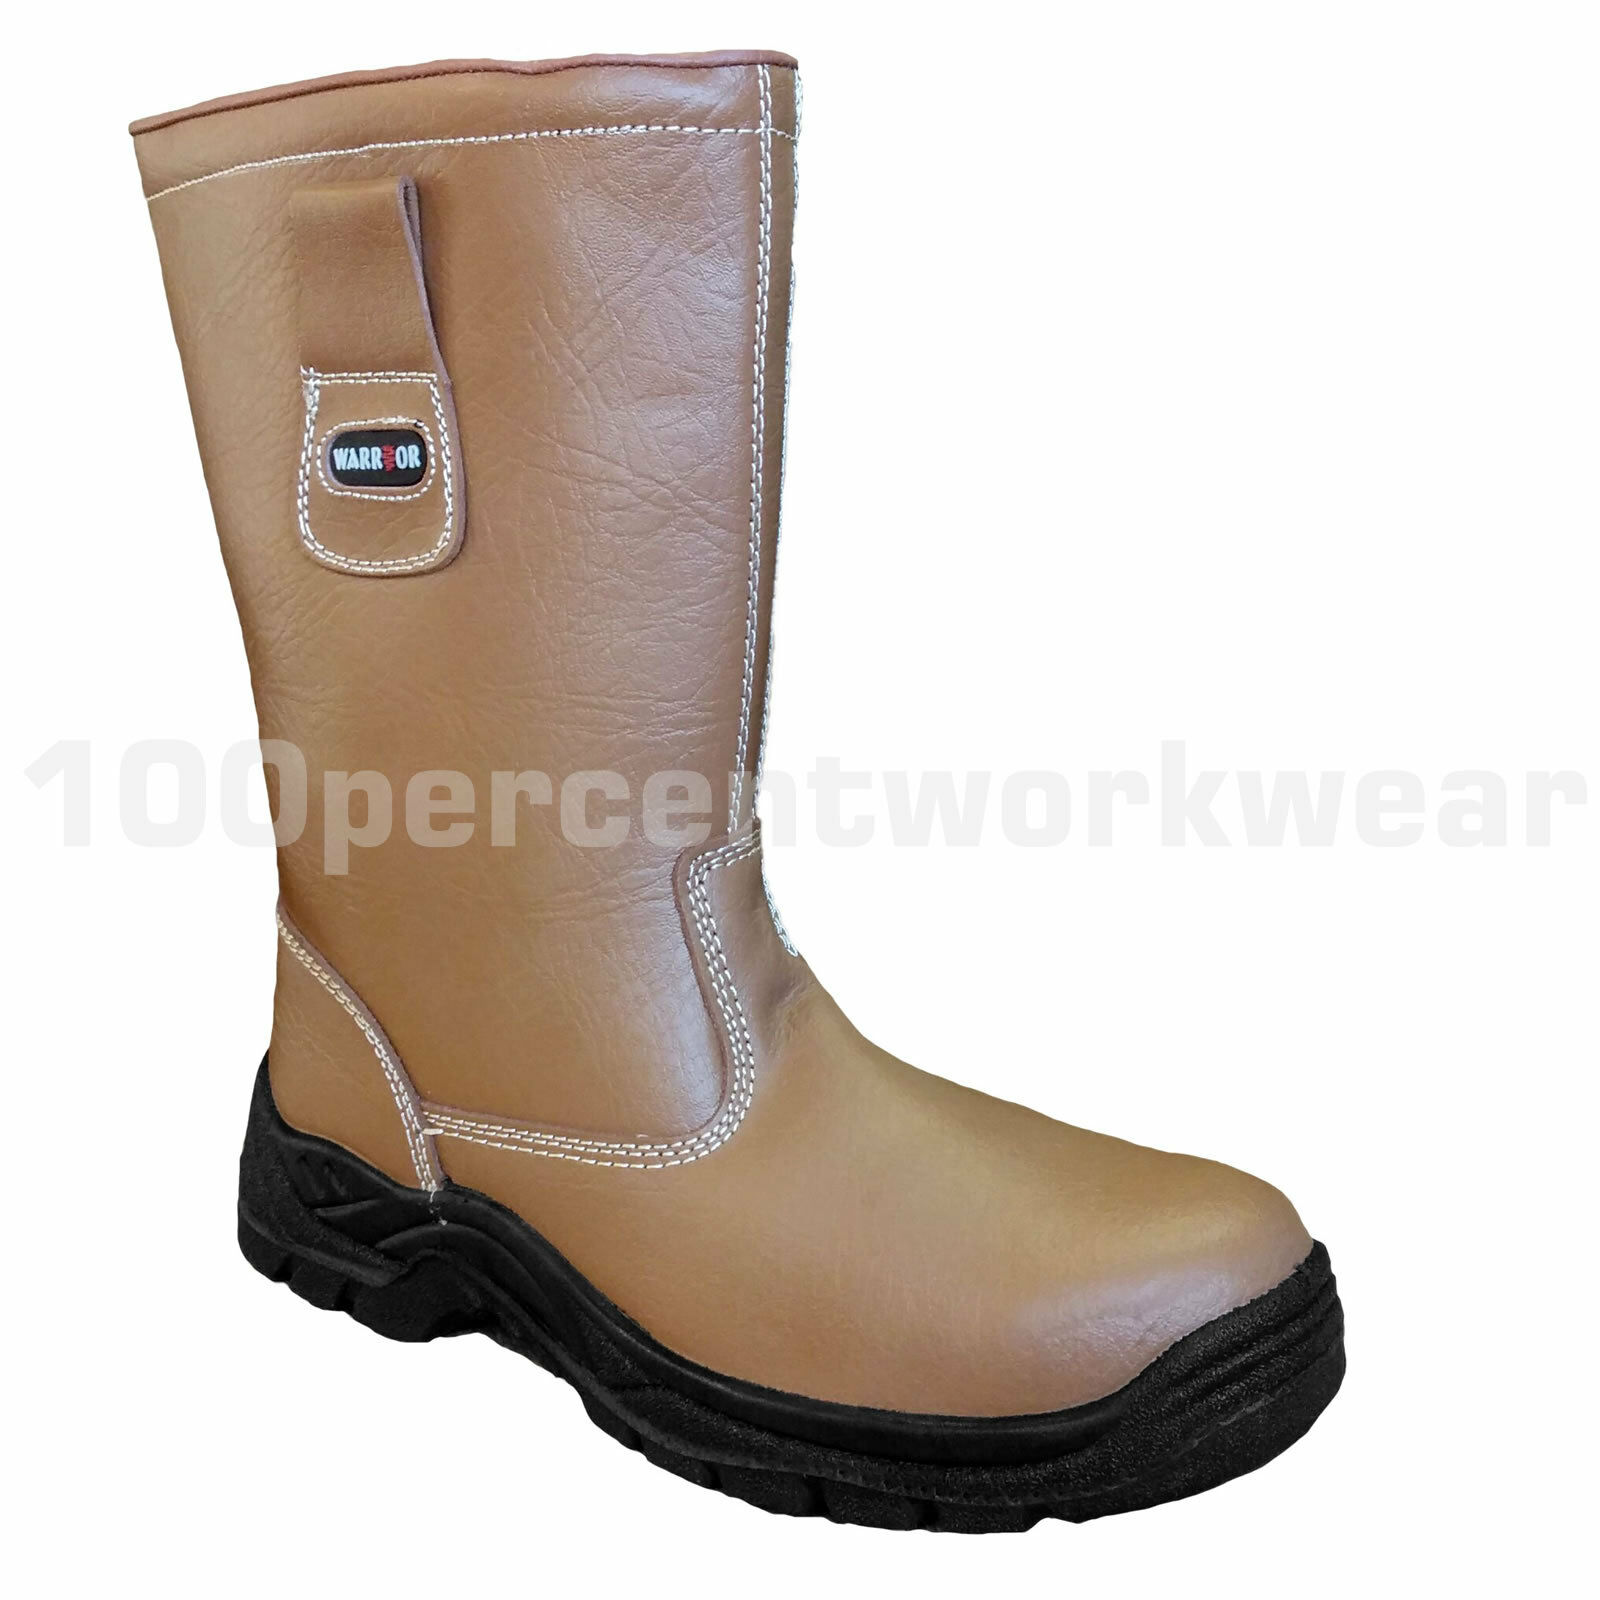 Warrior MMB7 Tan Leather Rigger Safety Boots Fur Lined Steel Toe Cap Mid Sole